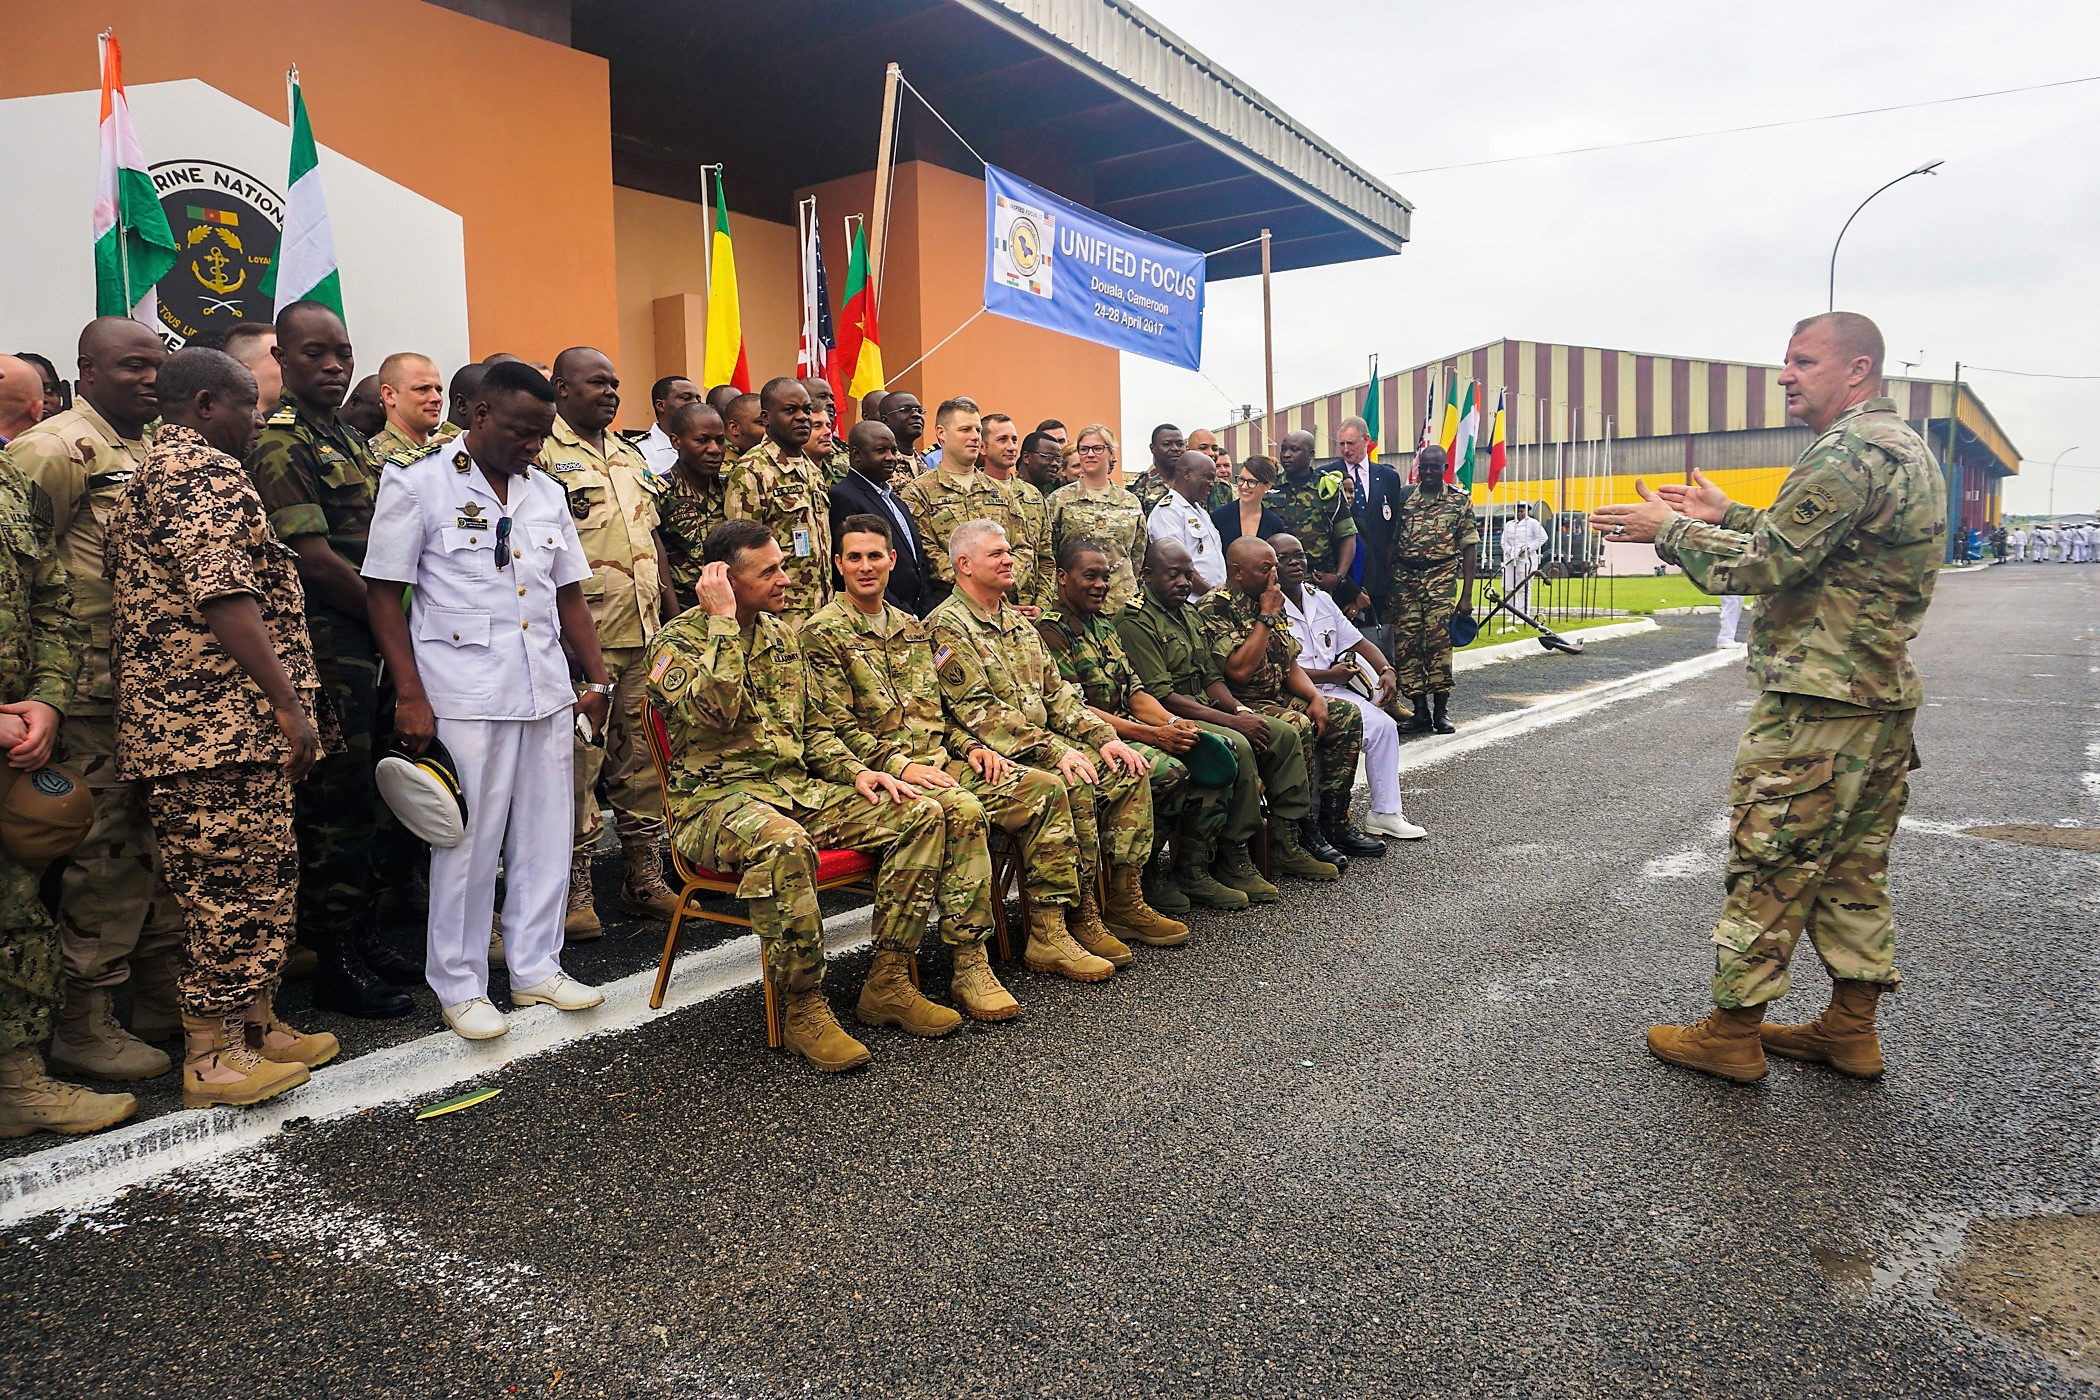 U.S. Army Sgt. Maj. Harold Estabrooks, U.S. Army Africa Army Reserve Engagement Cell, directs the arrangement of the group photo following the opening ceremony for exercise Unified Focus 2017, held on the Douala Naval Base, April 24, 2017. UF 17 is a weeklong tabletop exercise that brings the military partners of the Lake Chad Basin area's Multinational Joint Task Force (MNJTF) together to practice joint planning and coordination through a series of scripted vignettes. (Photo courtesy of U.S. Army Africa Public Affairs/Released)